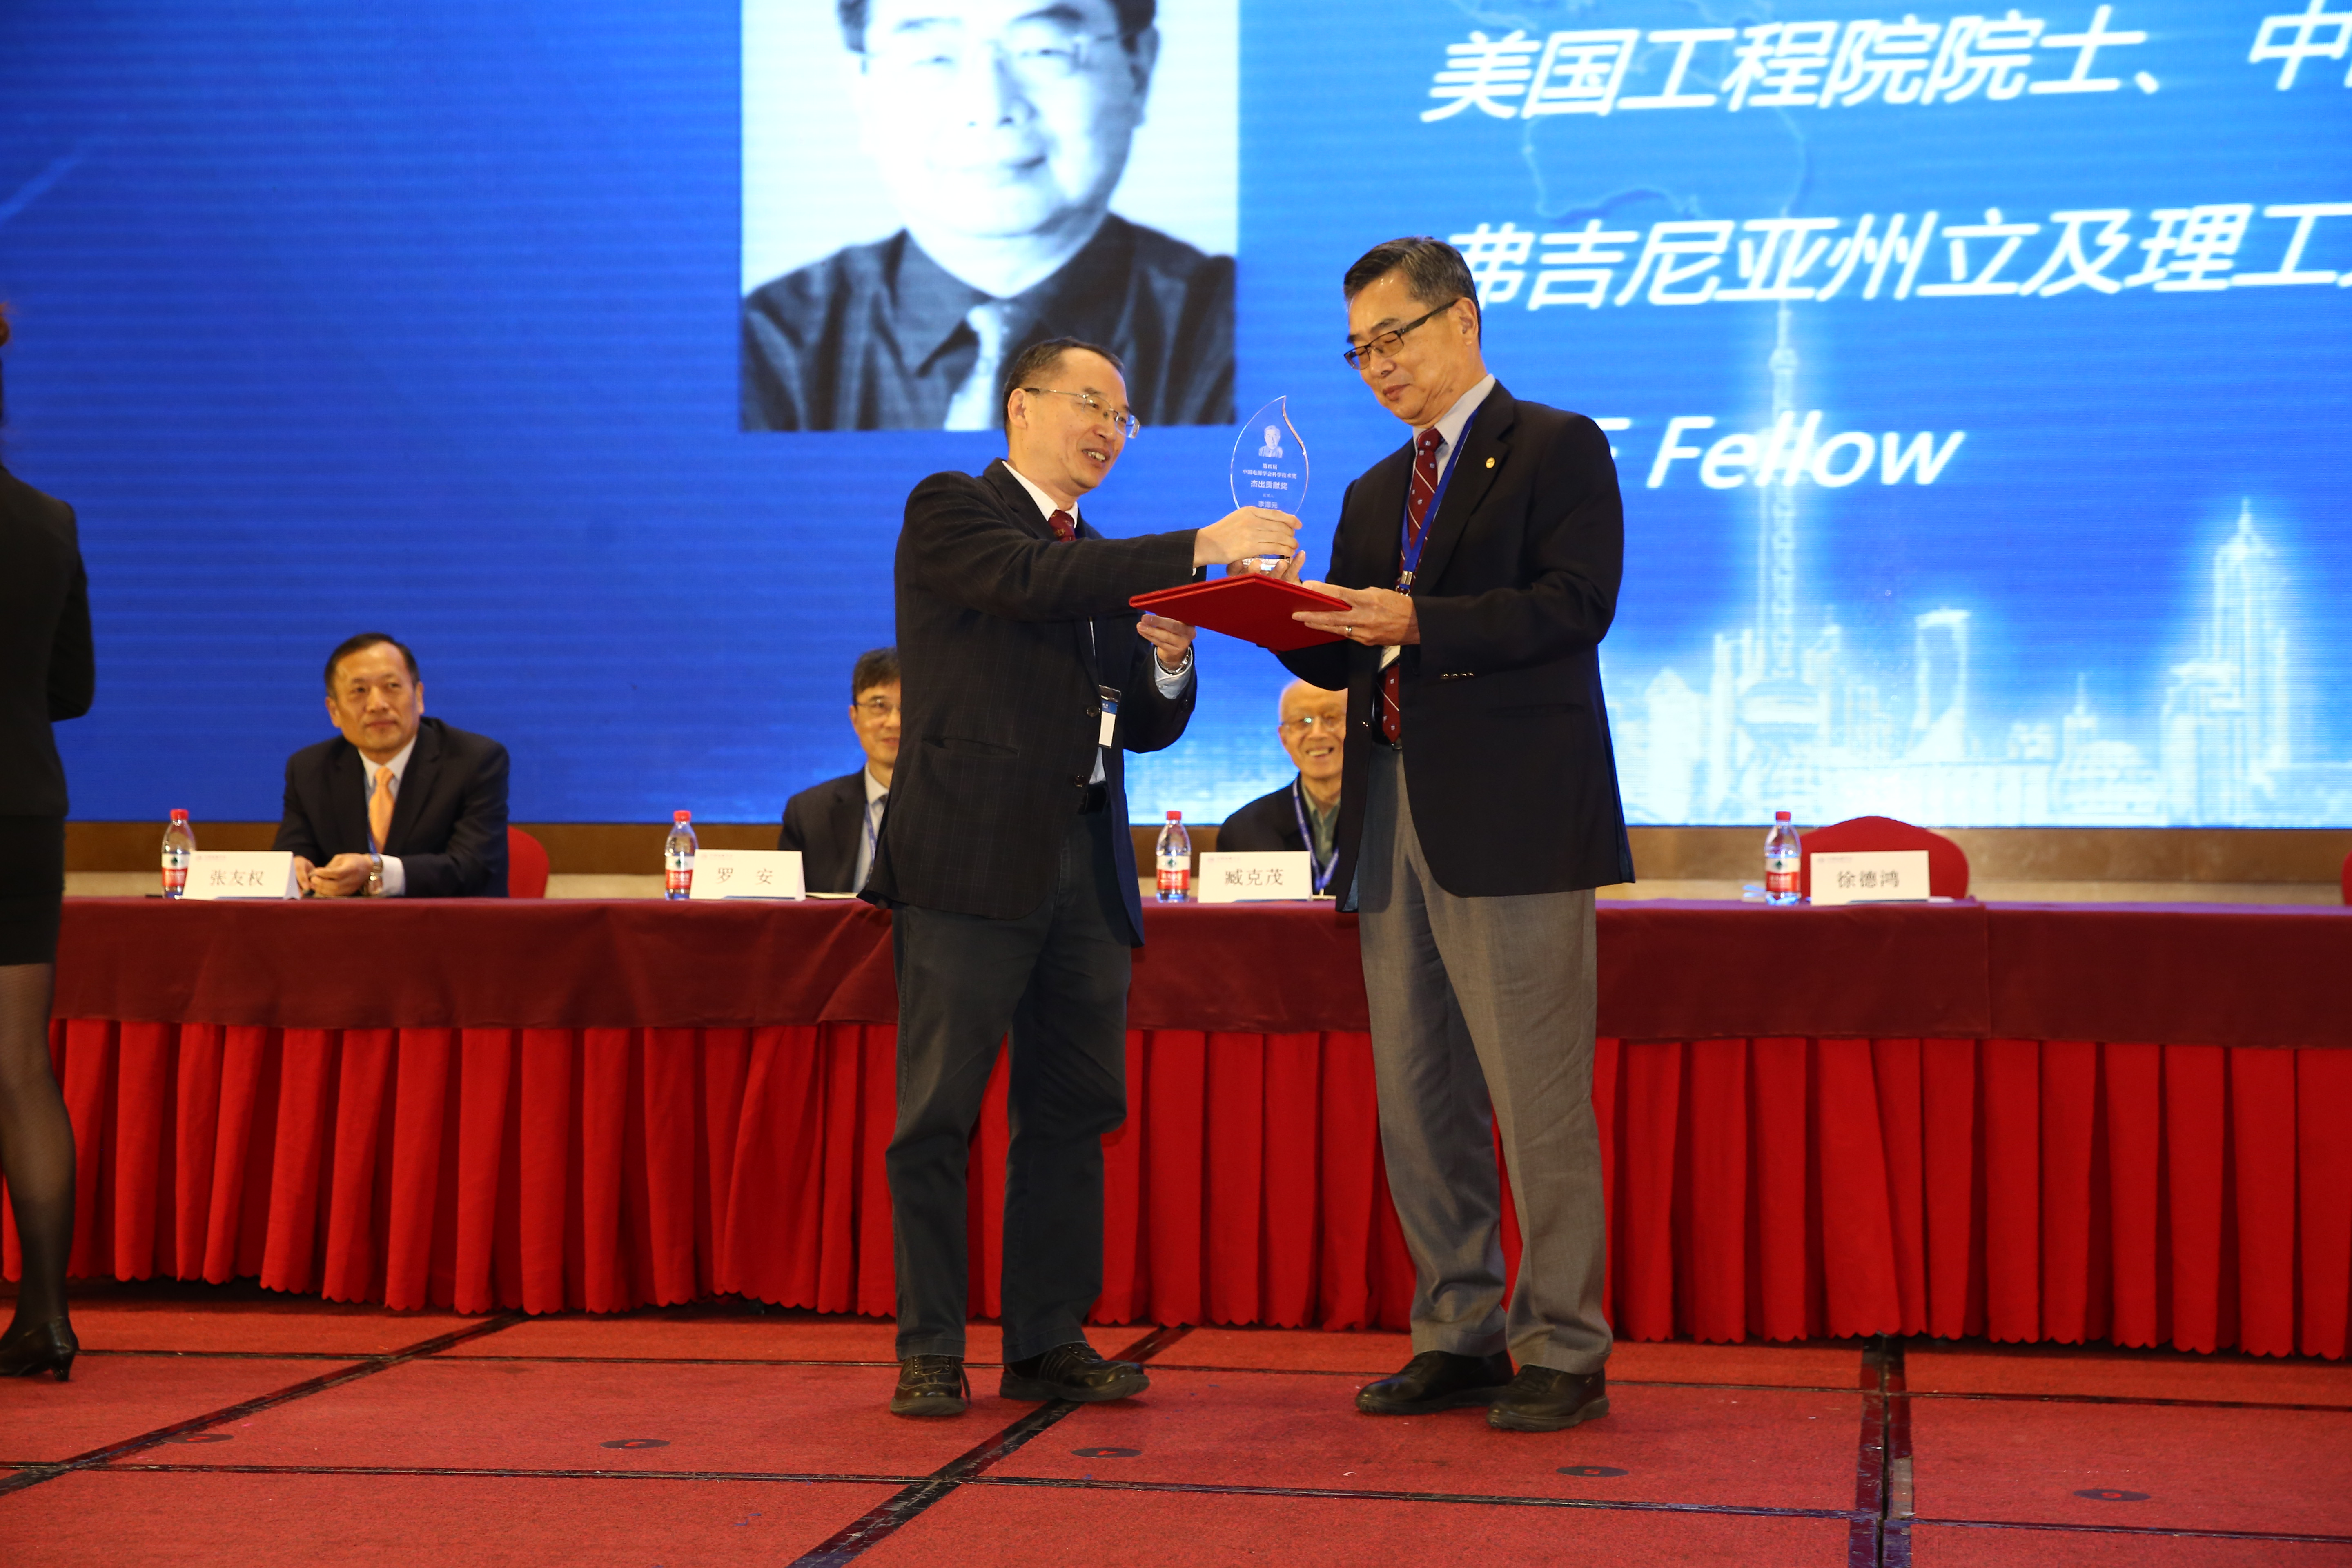 Image of Dr. Lee receiving CPSS Award